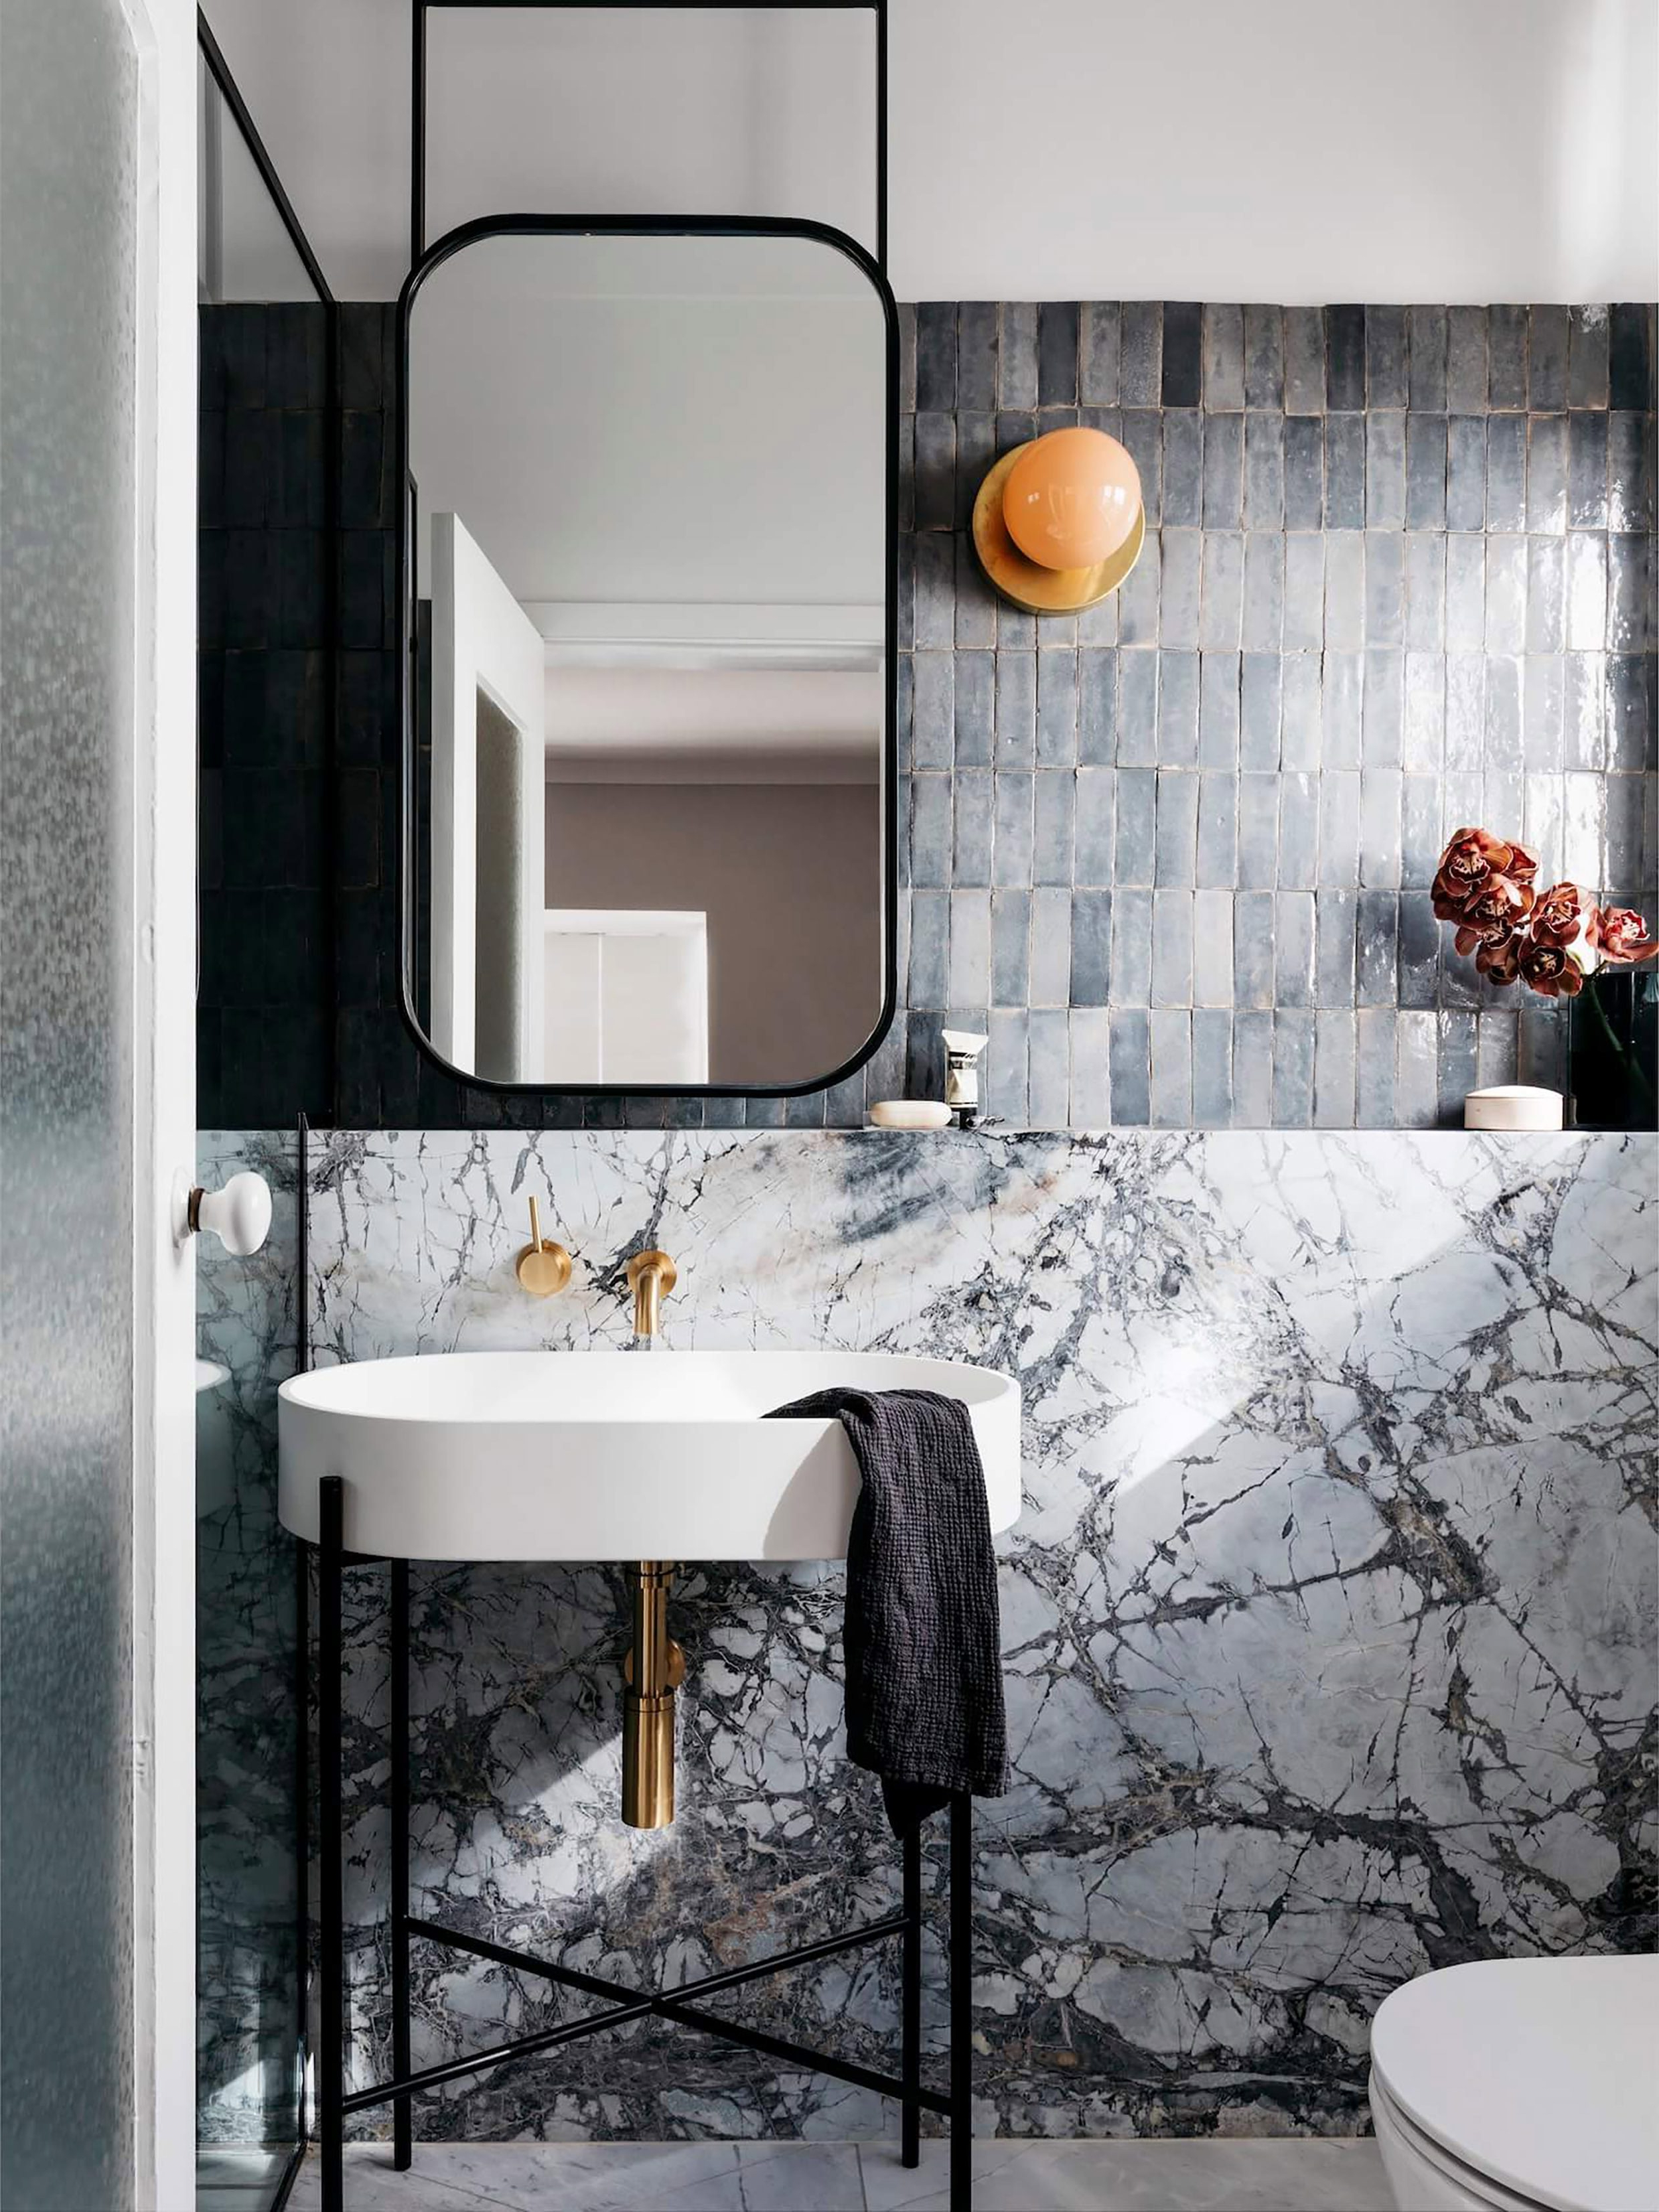 Vanity Wall Mirrors For Bathroom Intended For Popular 17 Fresh & Inspiring Bathroom Mirror Ideas To Shake Up Your Morning (View 8 of 20)